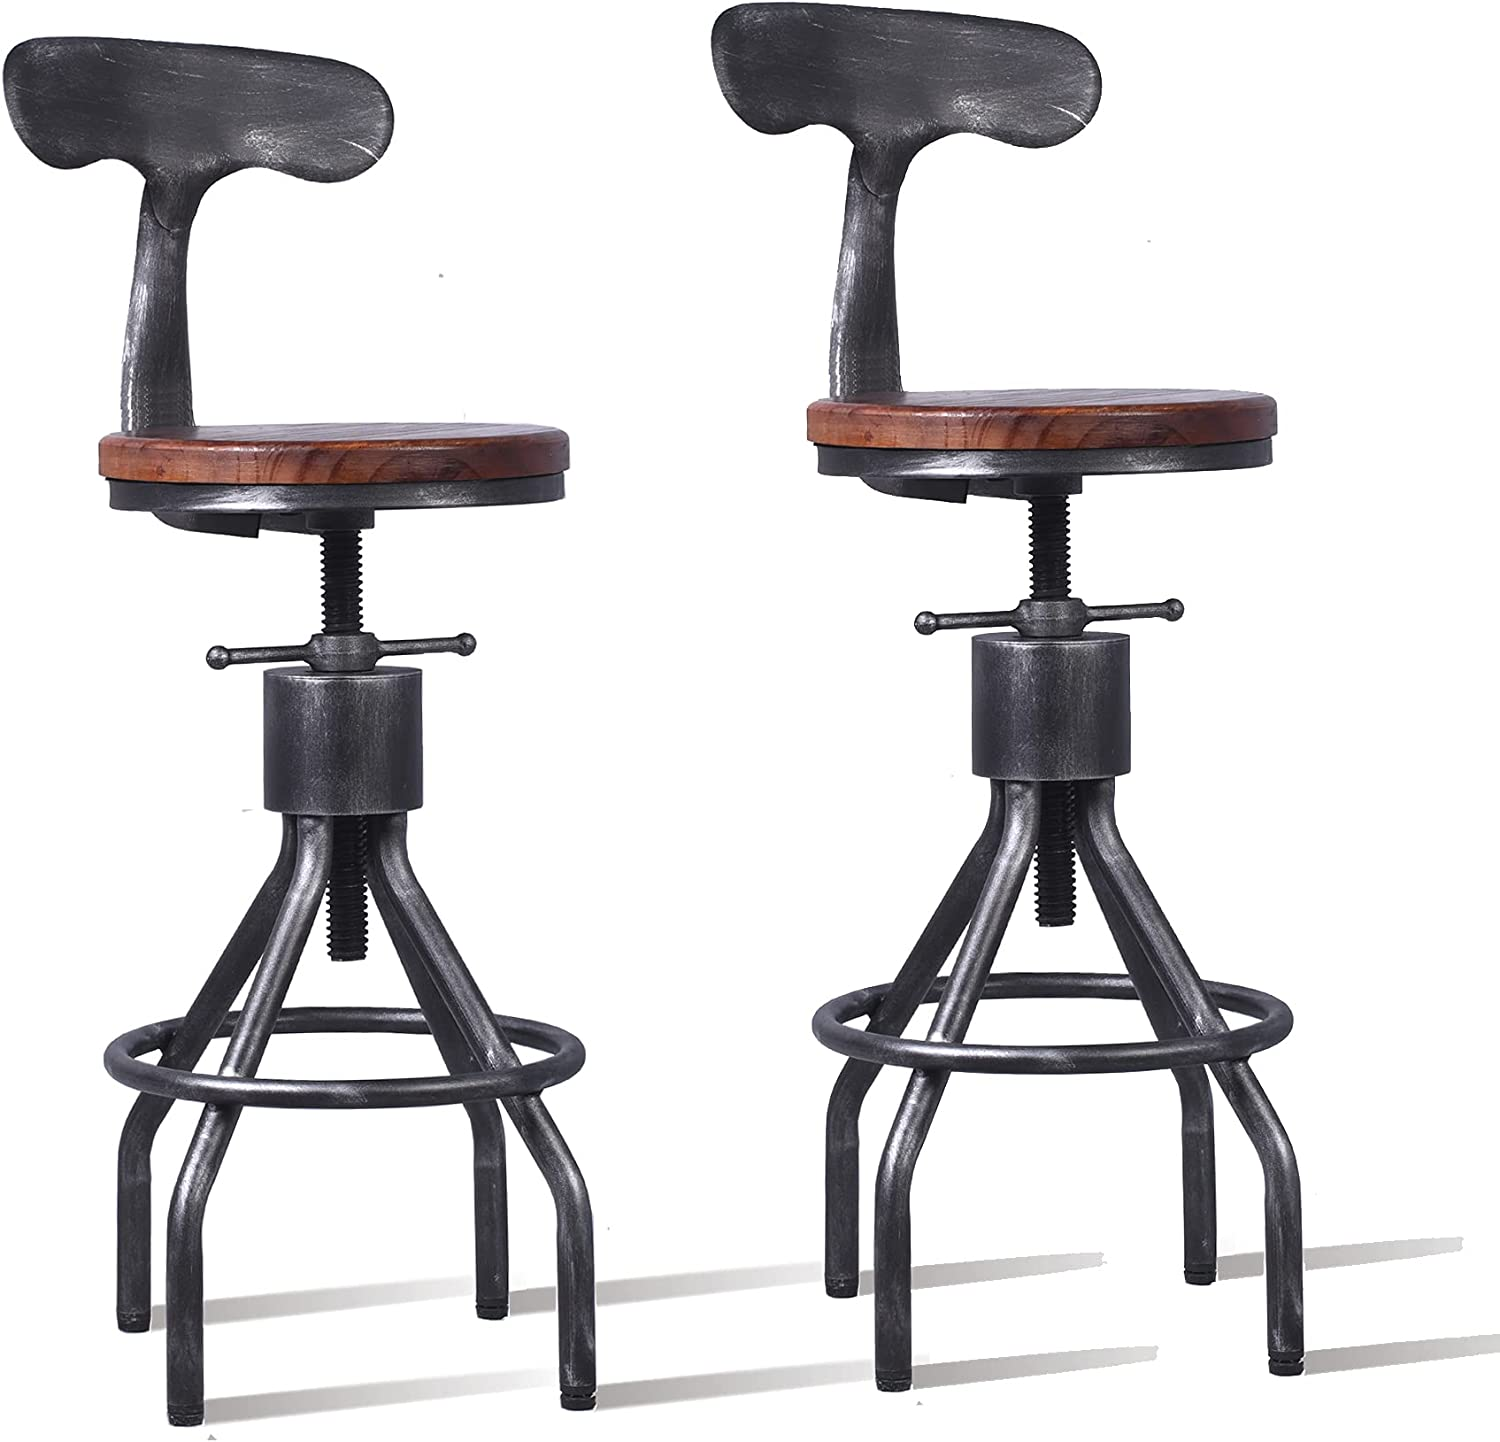 Diwhy Industrial Vintage Bar Stool,Kitchen Counter Height Adjustable Pipe Stool,Cast Iron Stool,Swivel Bar Stool with Backrest,Metal Stool,Silver,Fully Welded Set of 2 (Wooden Top)